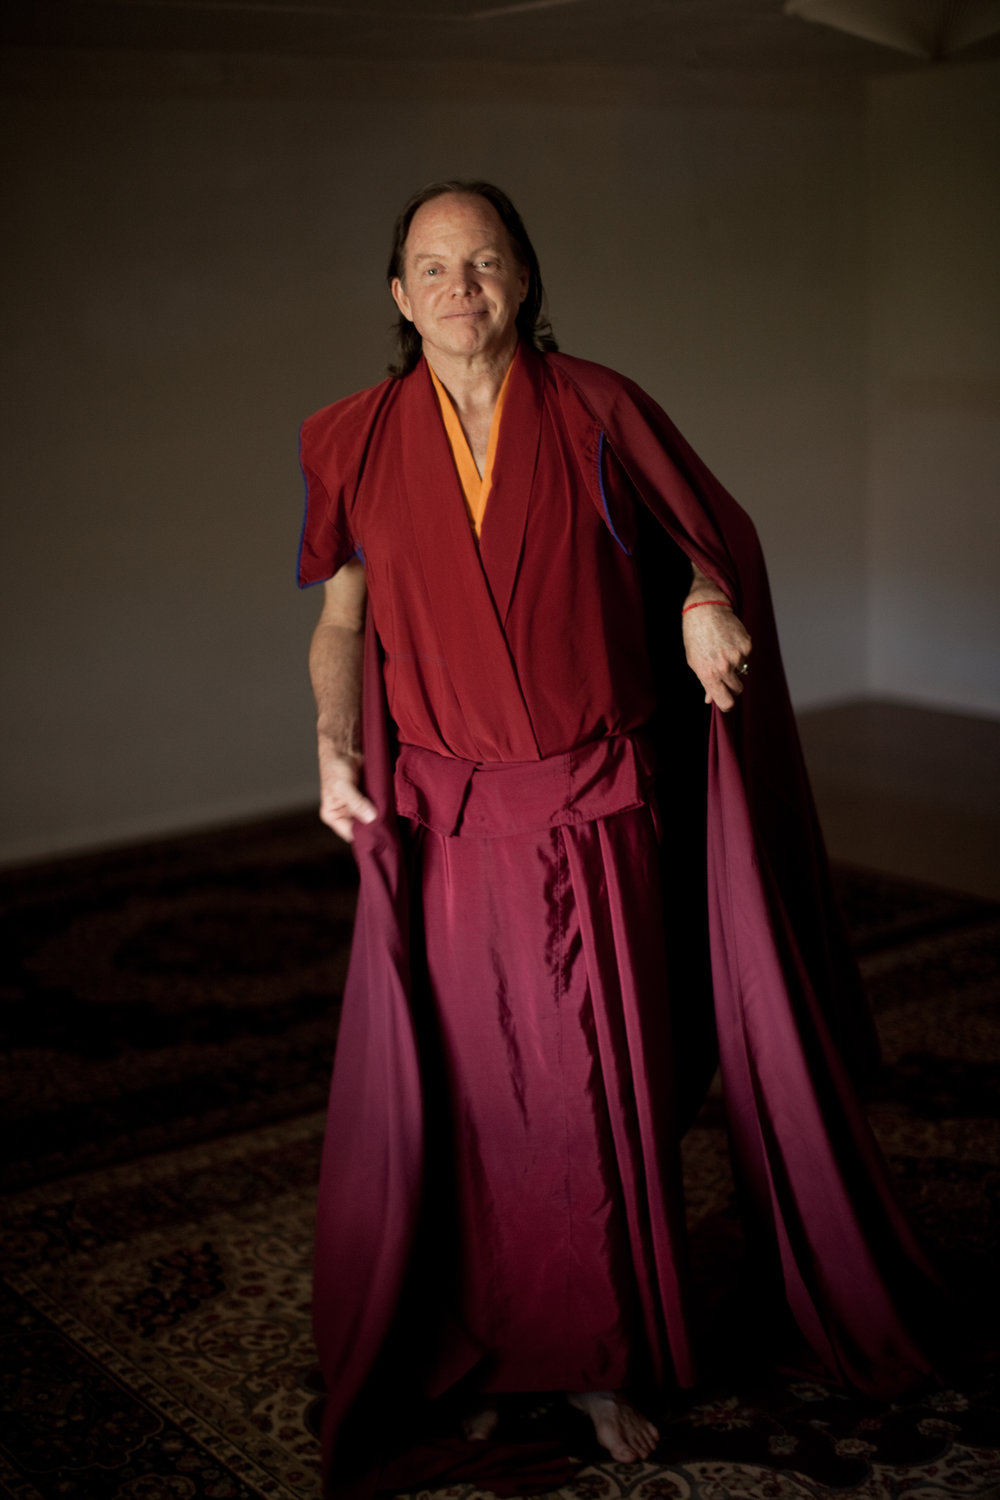 Geshe Michael Roach b. 1952 - Geshe Michael Roach (1952-present) grew up in Phoenix, Arizona, where he was an honors student with an interest in religion and social issues. He was awarded a scholarship to Princeton University and after graduation he went to study and live at Rashi Gempil Ling, with Khen Rinpoche Geshe Lobsang Tharchin. In 1995 he completed his studies with Khen Rinpoche and at Sera Monastery in India, and became the first American to be awarded the Geshe degree. While completing this work, he also developed and taught the seven-year Formal Study Program, which parallels the same core information taught at the Tibetan Buddhist monastery. That original program of 18 courses captures the essence of the six Great Books of Buddhism, as a means to train the next generations of western Buddhist teachers. Asian Classics Institute began with the mission to provide the recordings online, live teachings and by correspondence for anyone who would like to pursue these studies.In addition to his work with Diamond Cutter Institute, whose aim is to present the core teachings of Buddhism in a more universal presentation, Geshe Michael continues to translate and to teach Buddhist texts to many different audiences, in many facets. It is the aim of Asian Classics Institute to continue to make this material and teachings available to improve the lives of people in our communities and throughout the world.